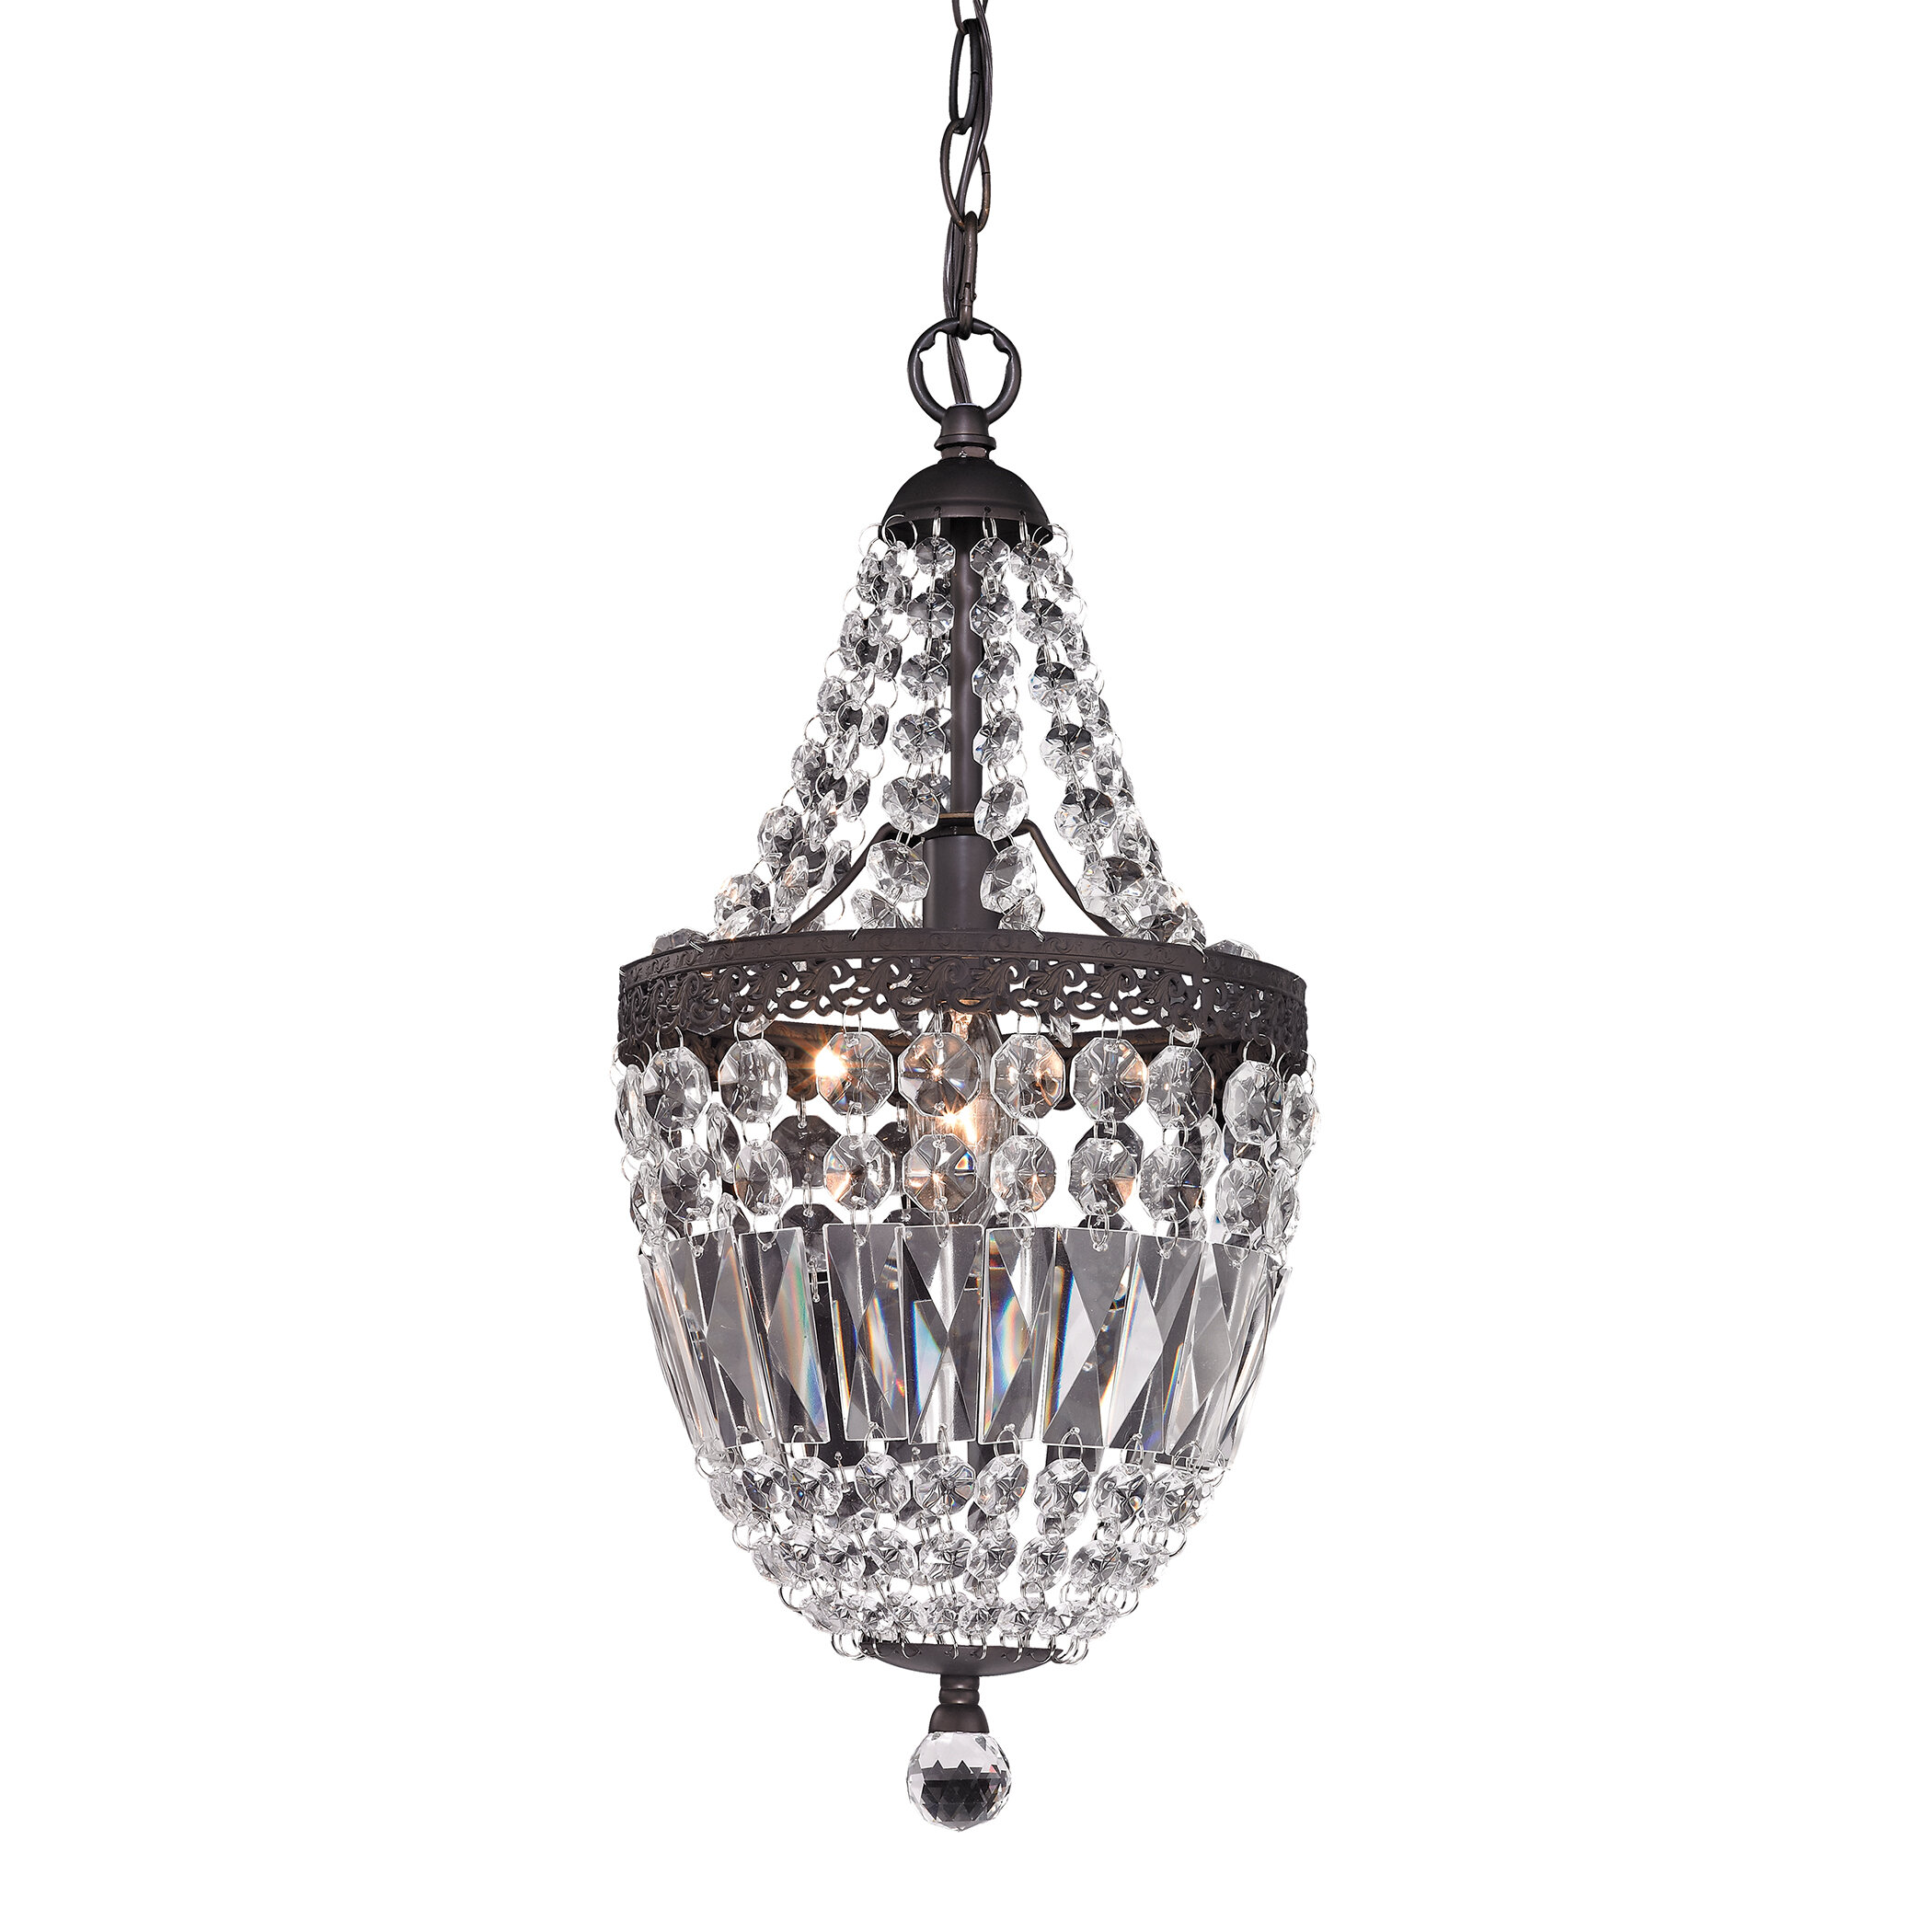 House of hampton spokane 1 light crystal pendant reviews wayfair